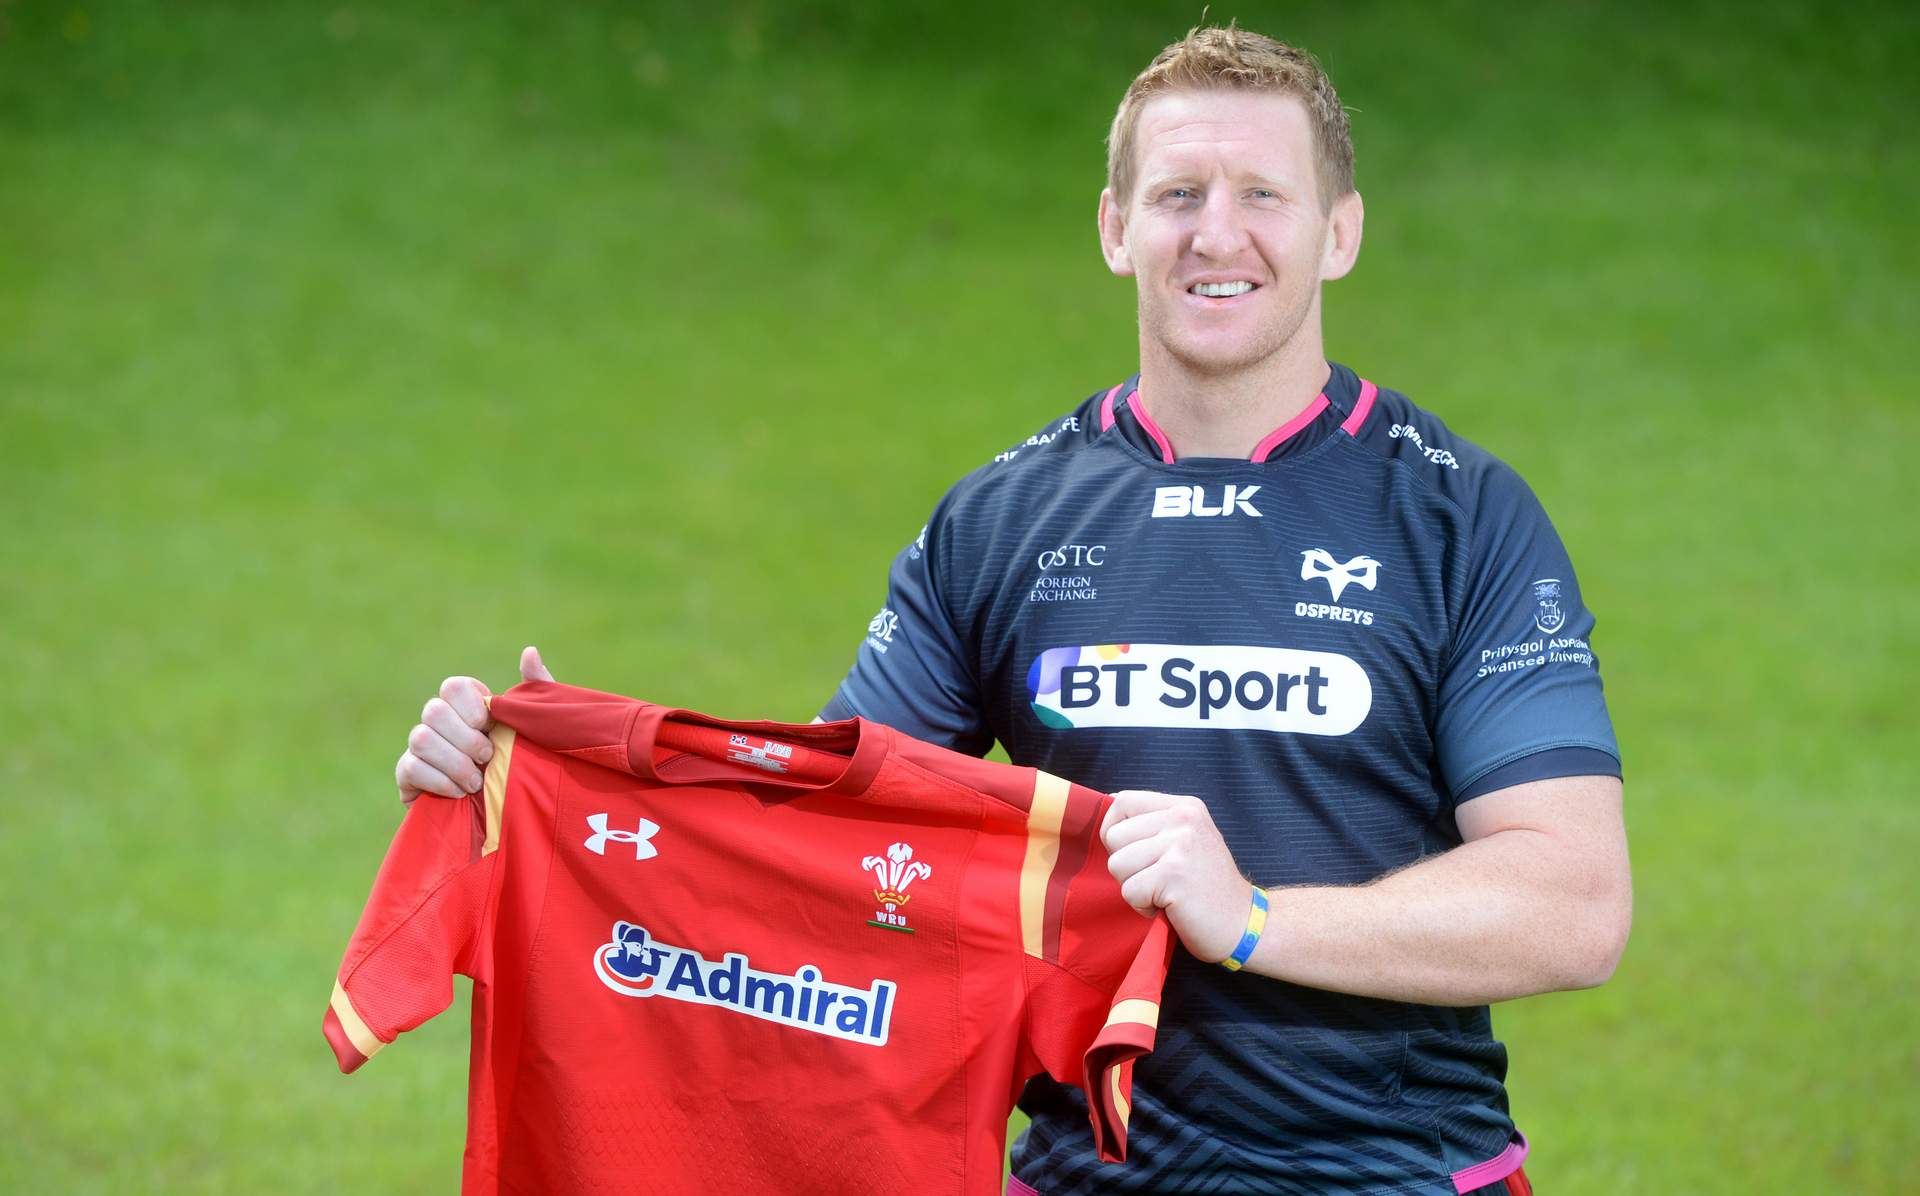 Homeward bound: Bradley Davies